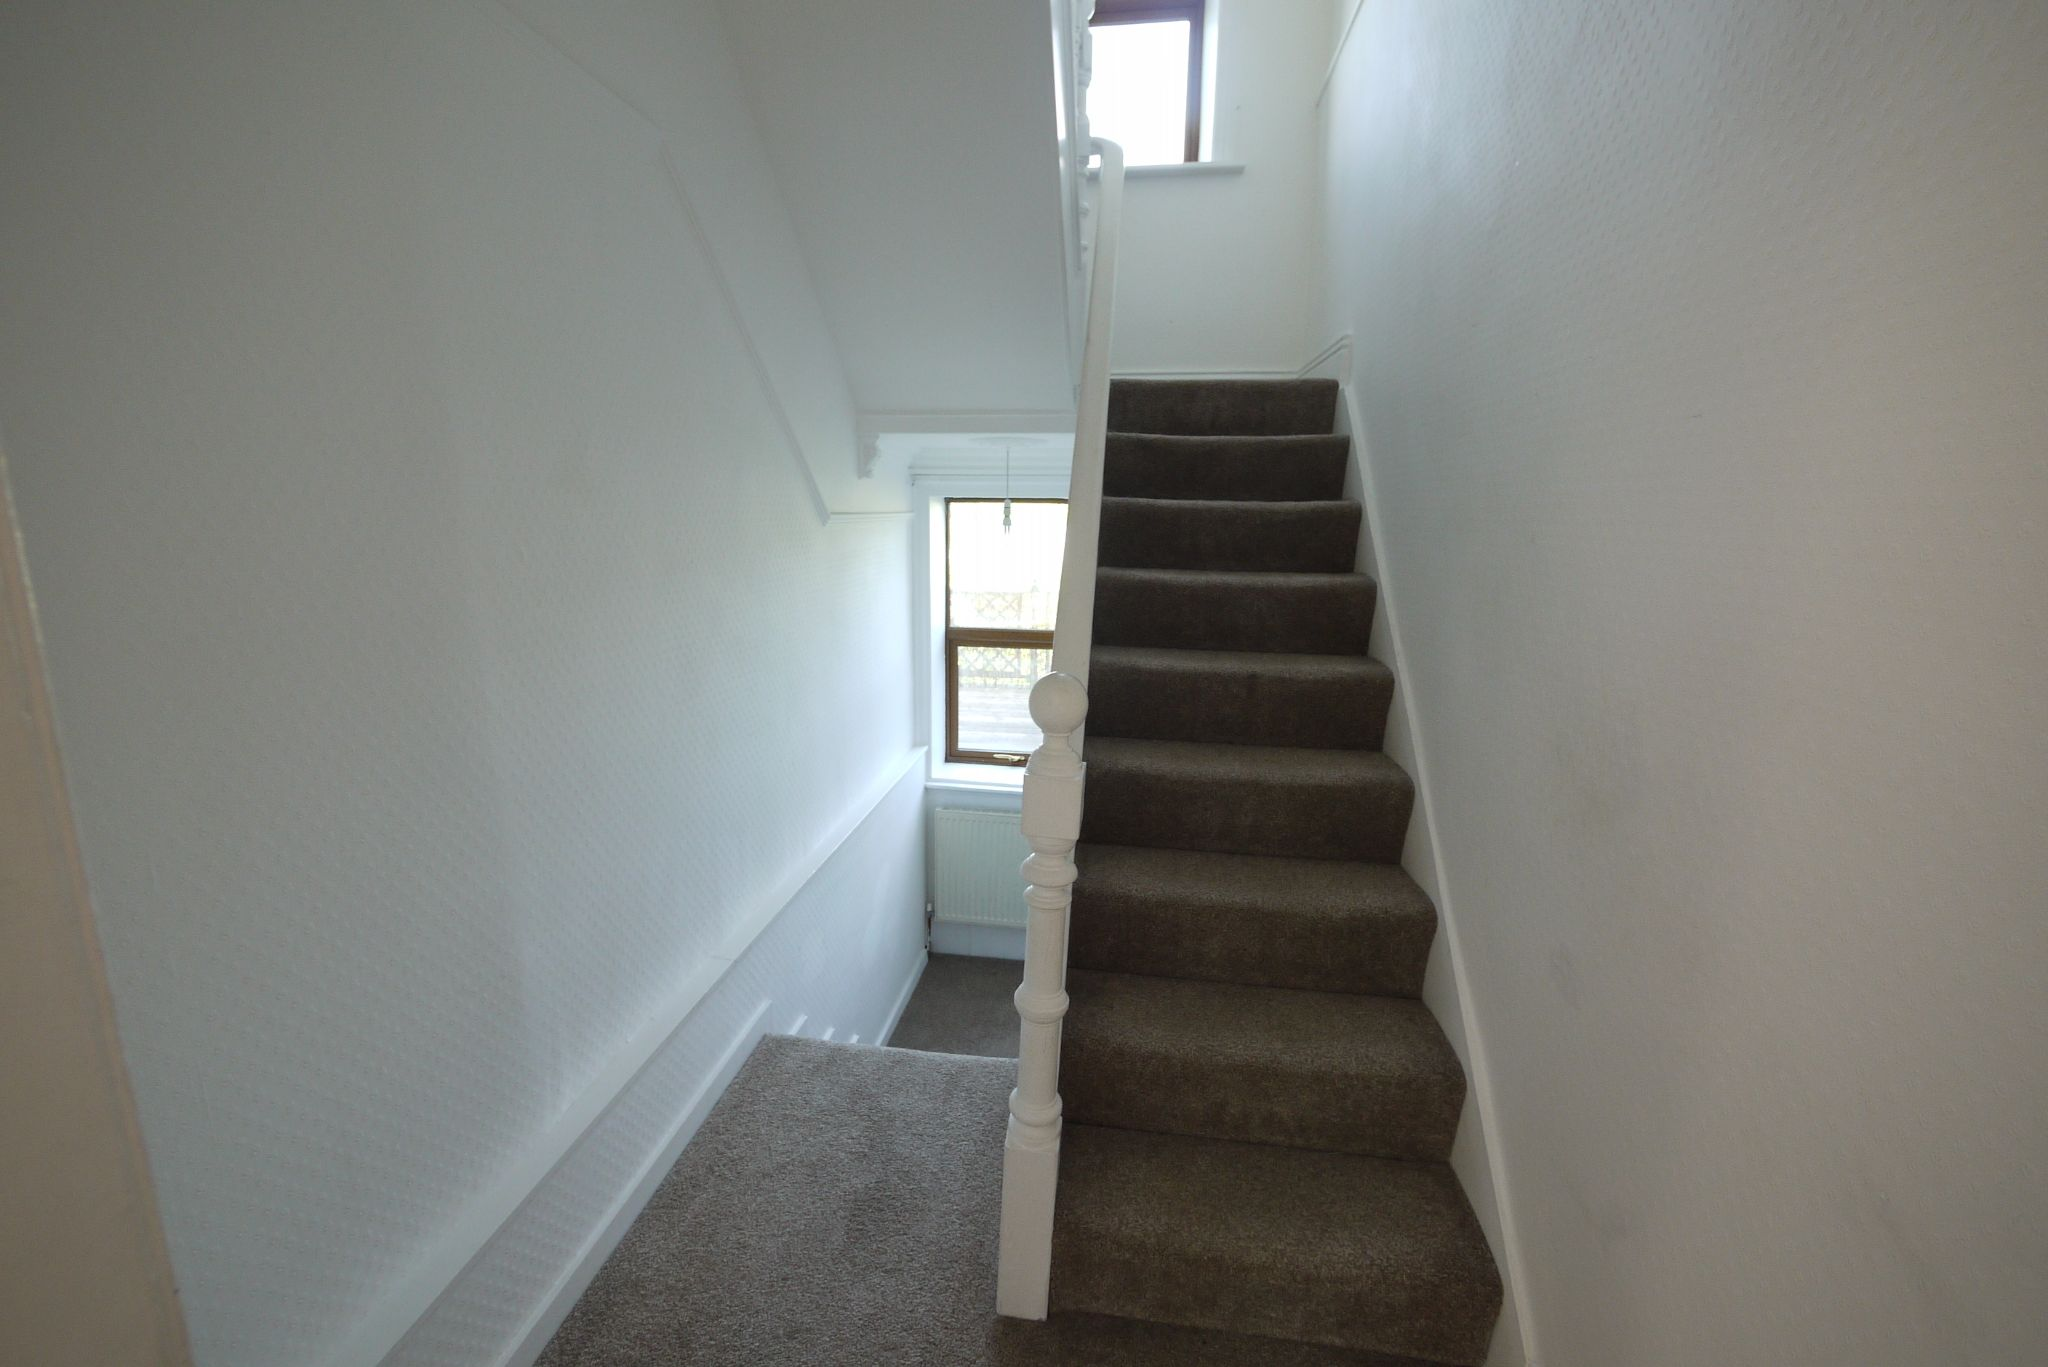 3 bedroom mid terraced house SSTC in Bradford - Photograph 7.